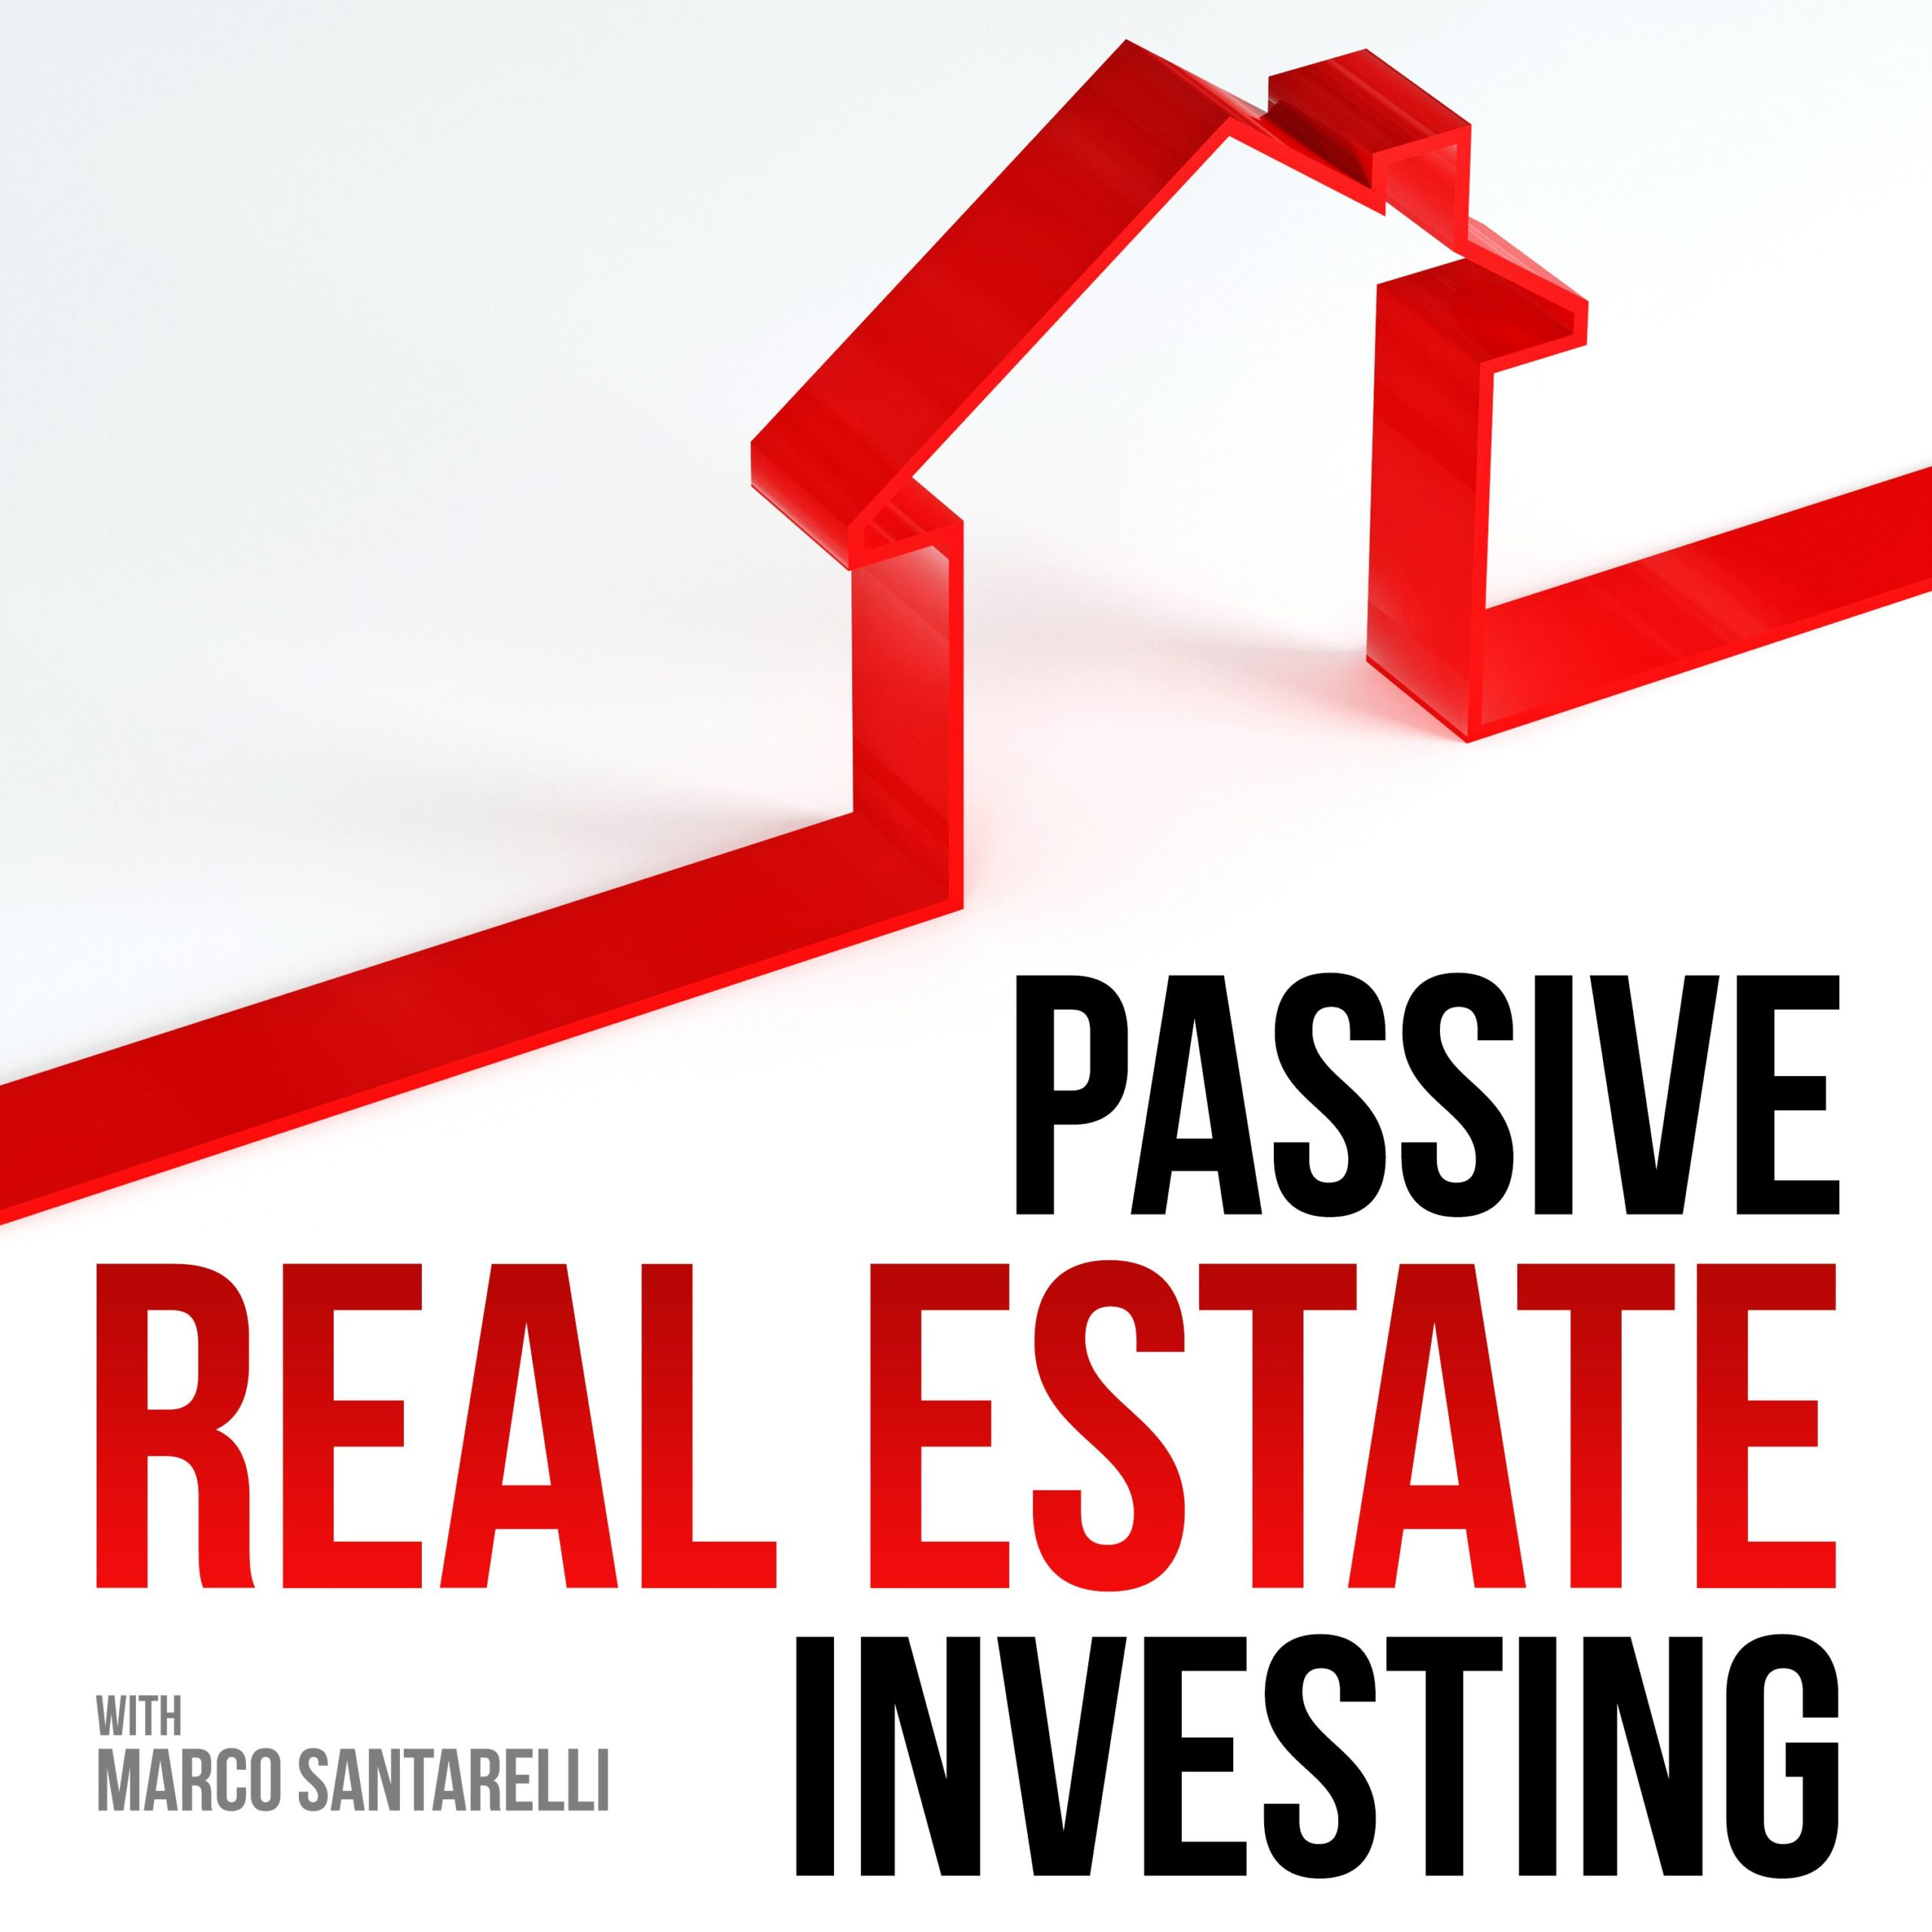 Passve Real Estate Investing Podcast Logo